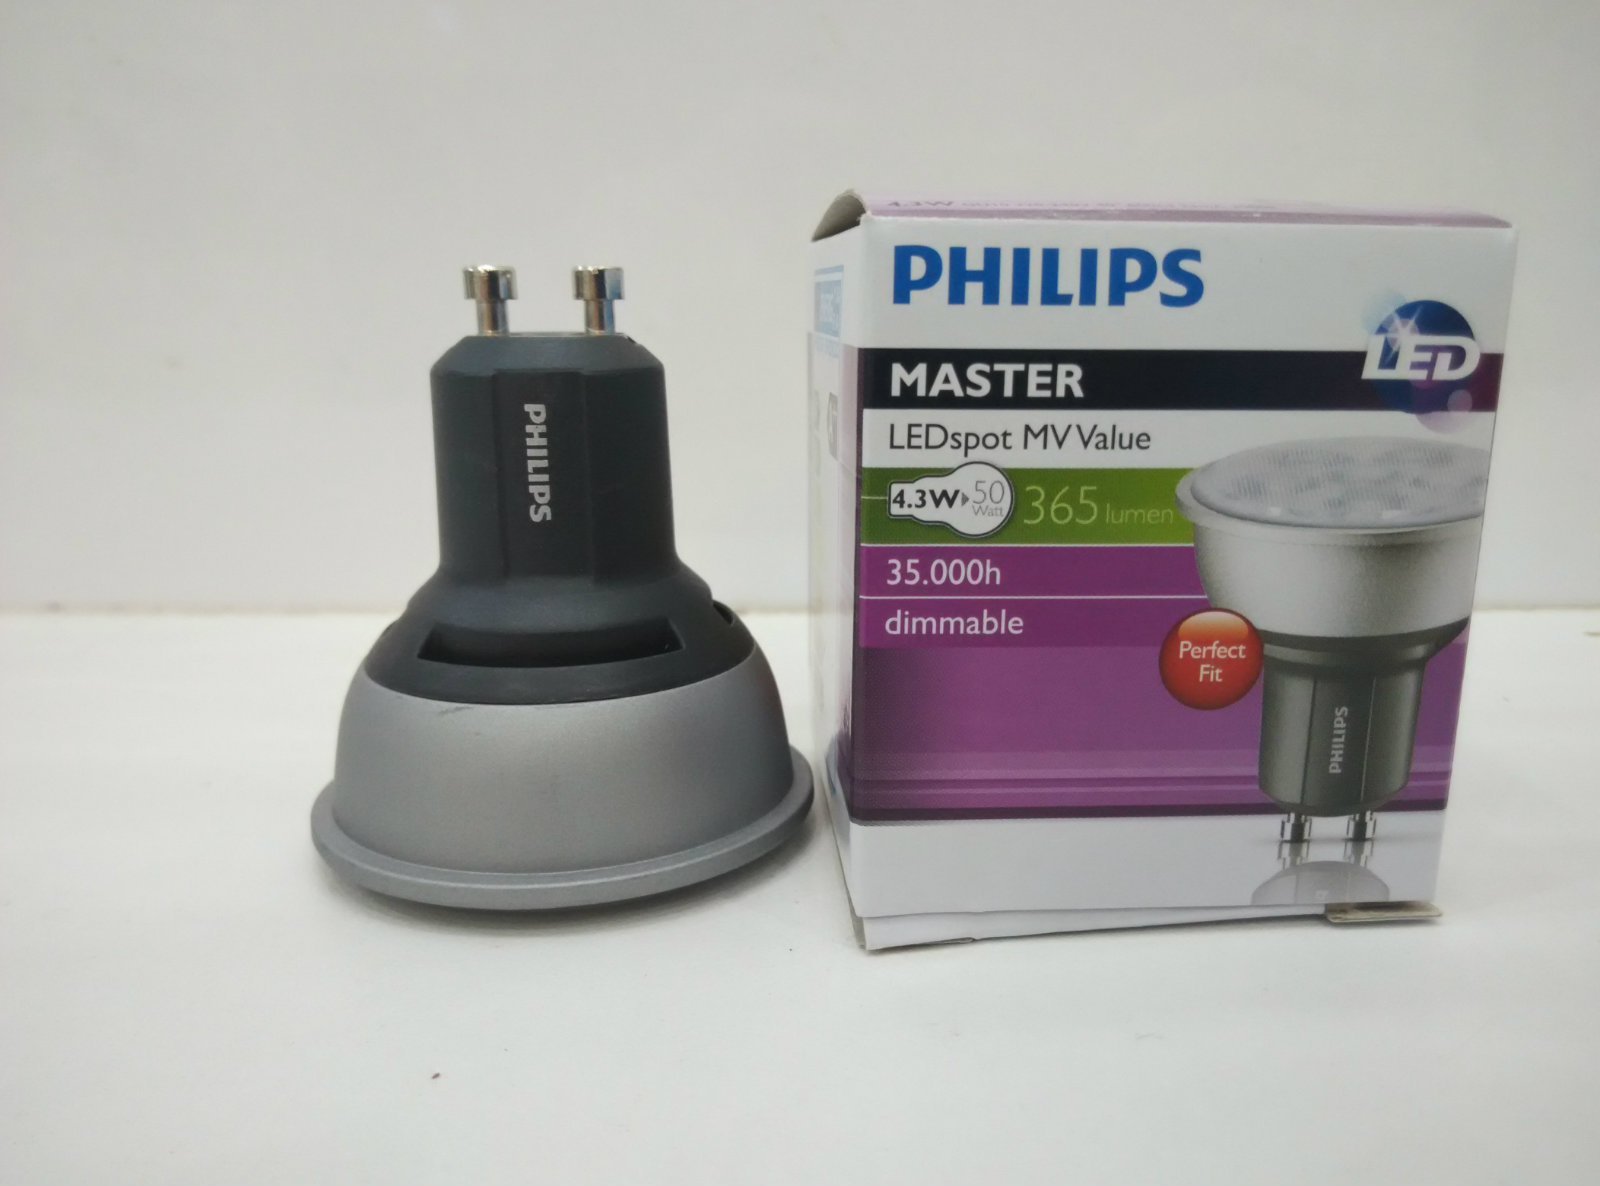 PHILIPS LED GU10 4.3W DIMMABLE BULB